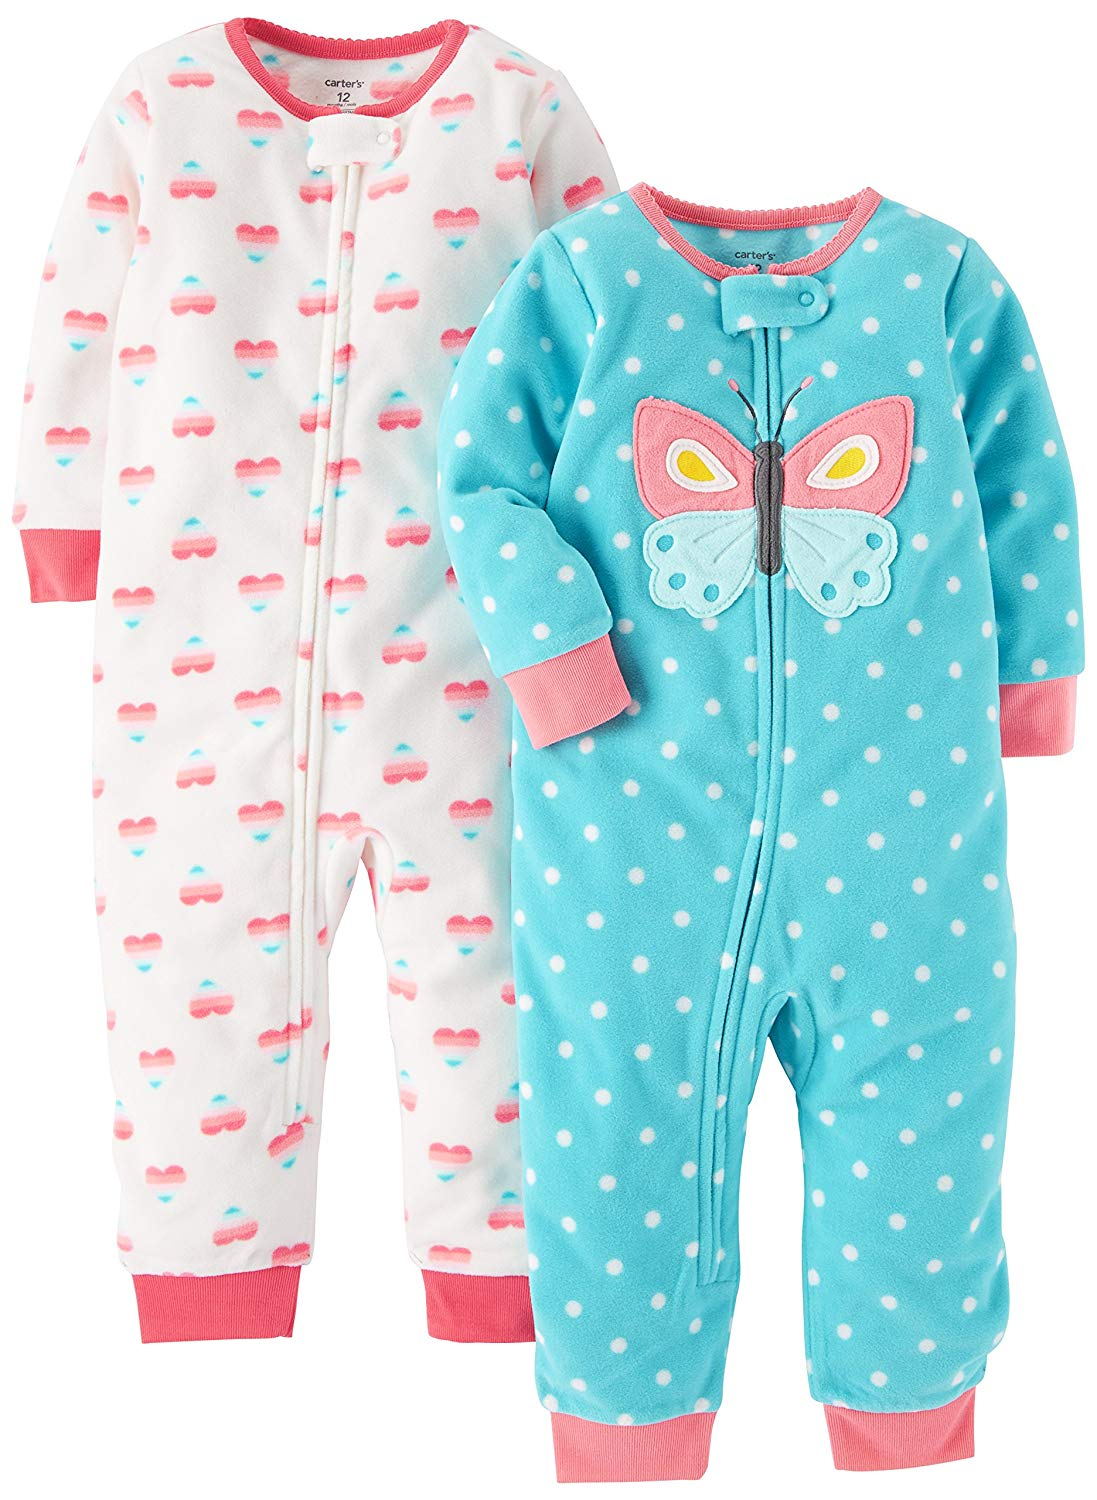 4903714b84 Carter s Baby Girls  2-Pack Fleece Footless Pajamas